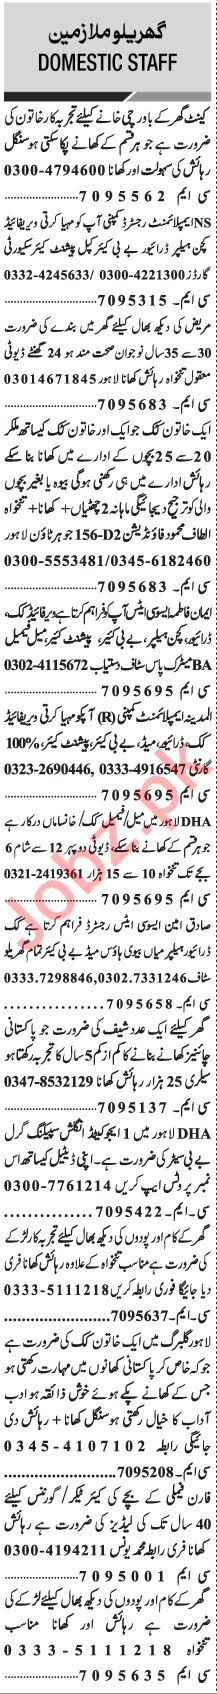 Jang Sunday Classified Ads 28 Feb 2021 for Domestic Staff